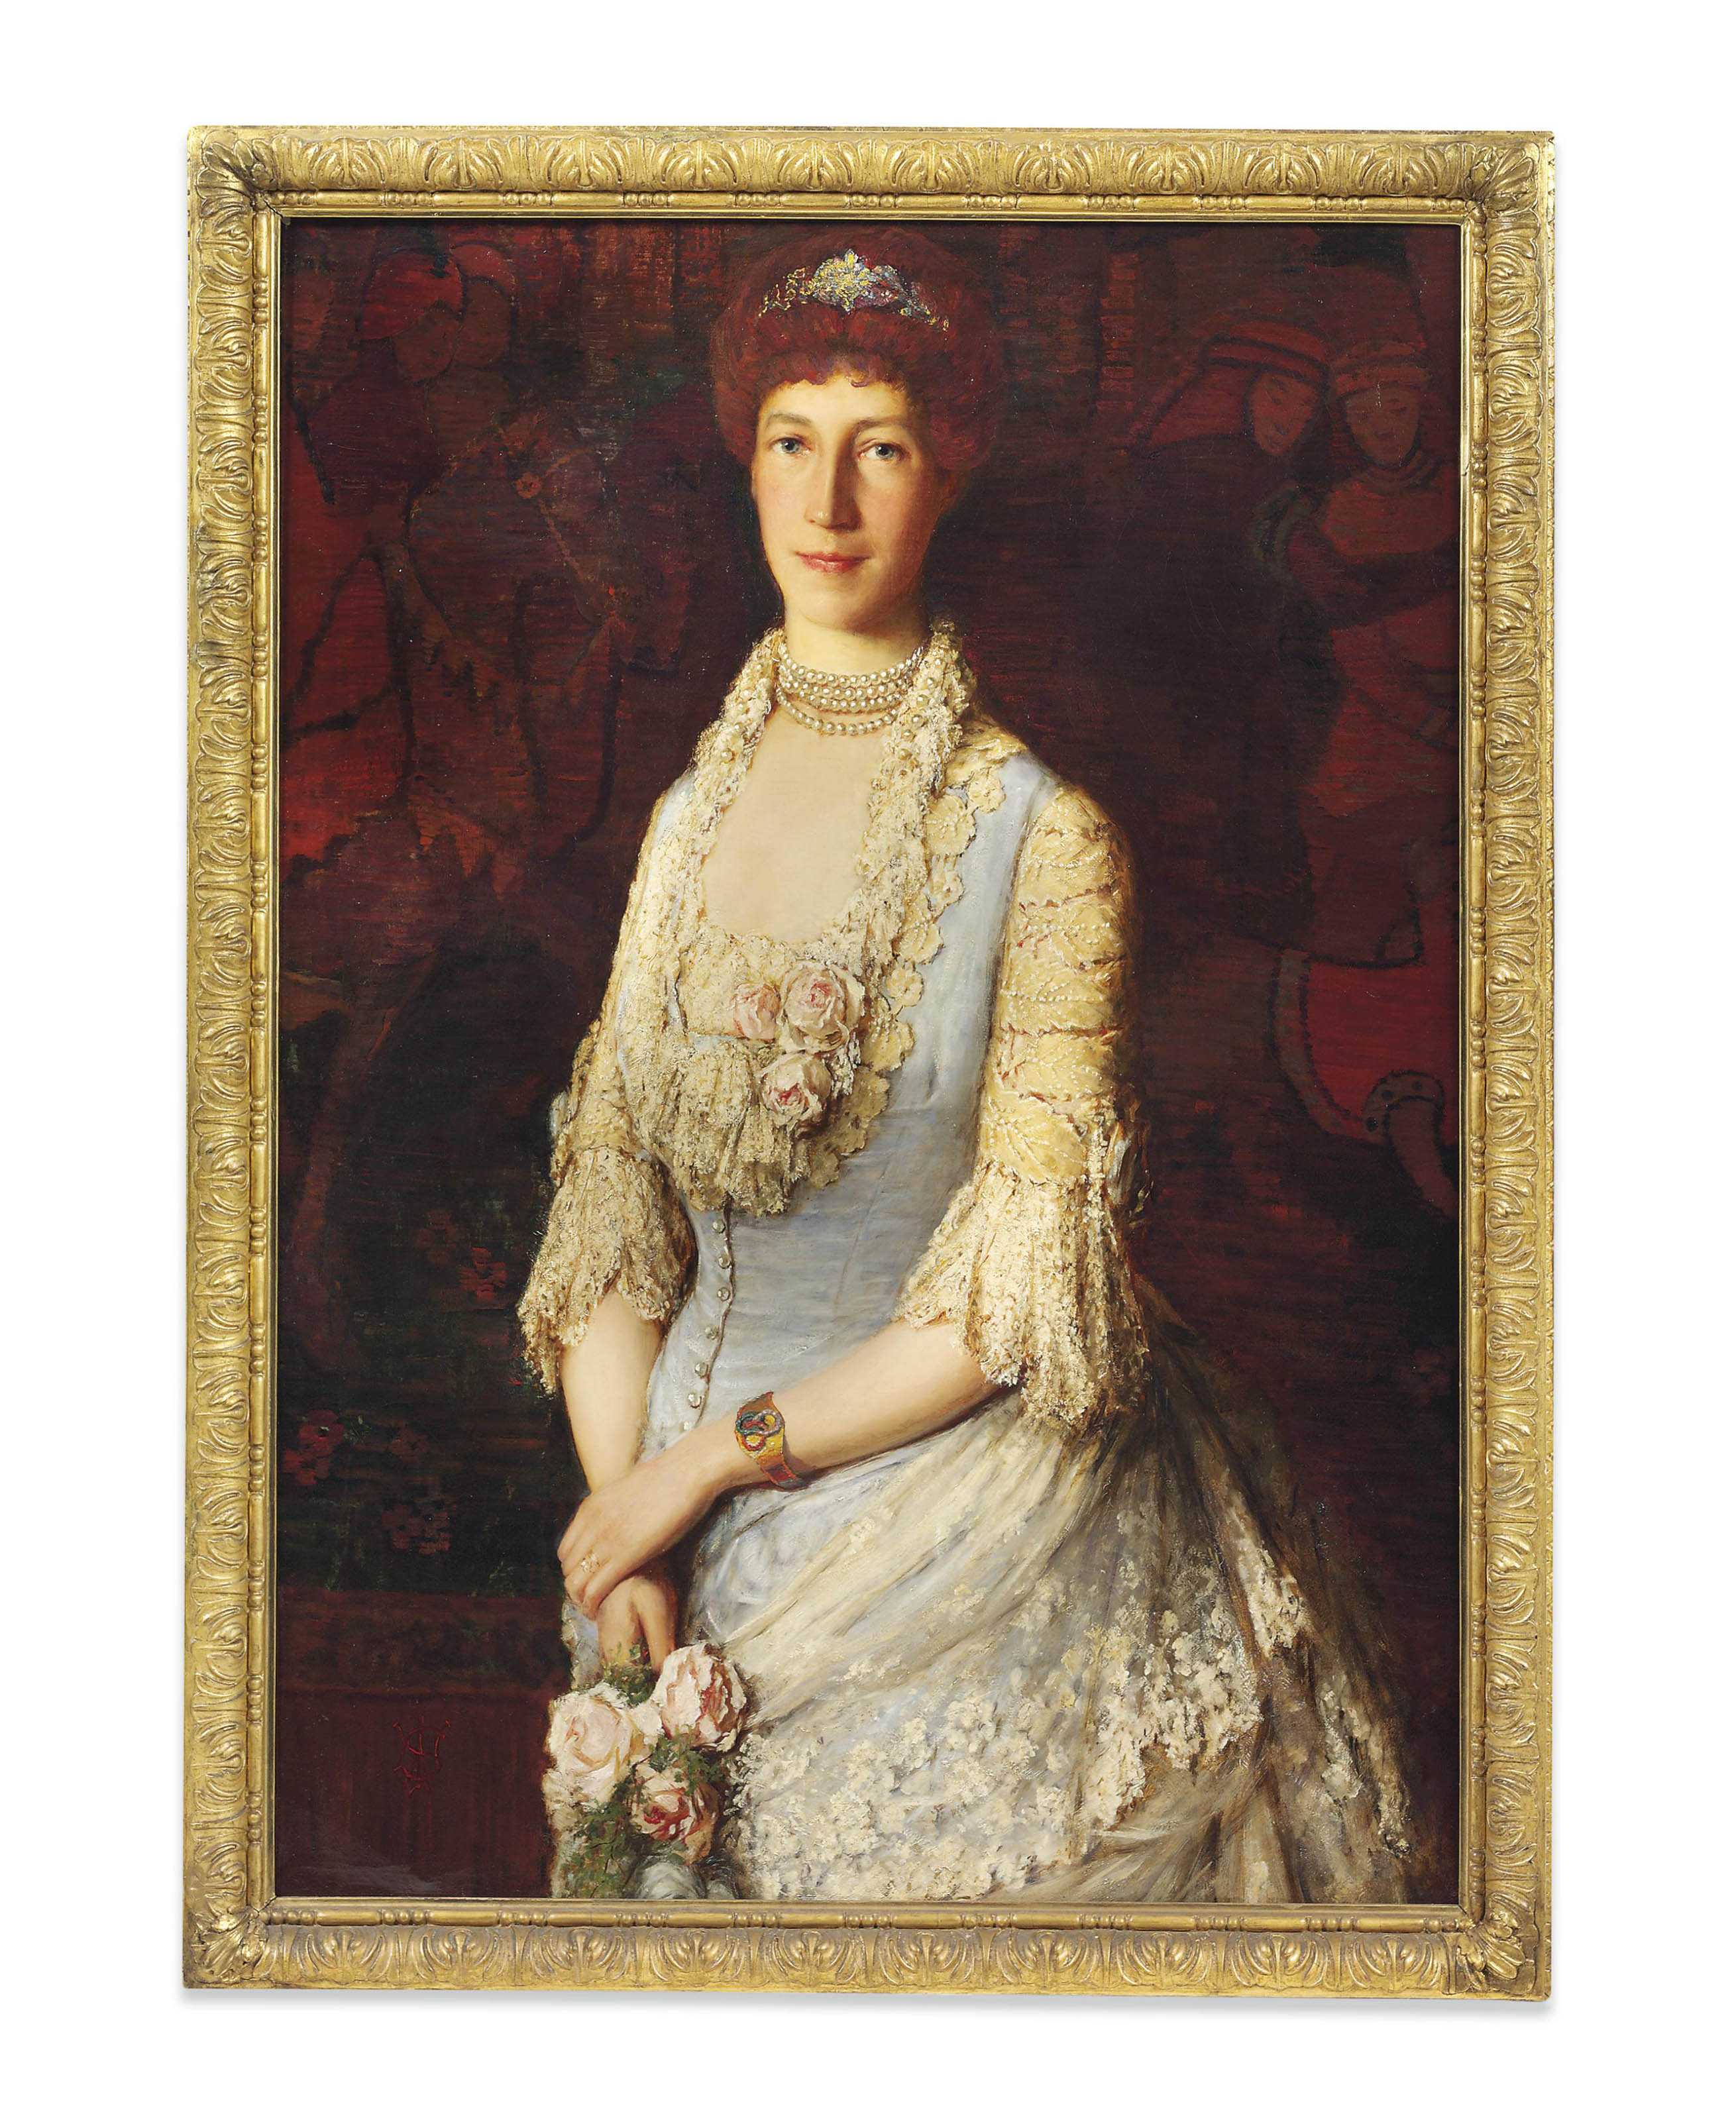 Portrait of a lady, said to be Lady Singer, half-length, in a white lace dress, holding roses